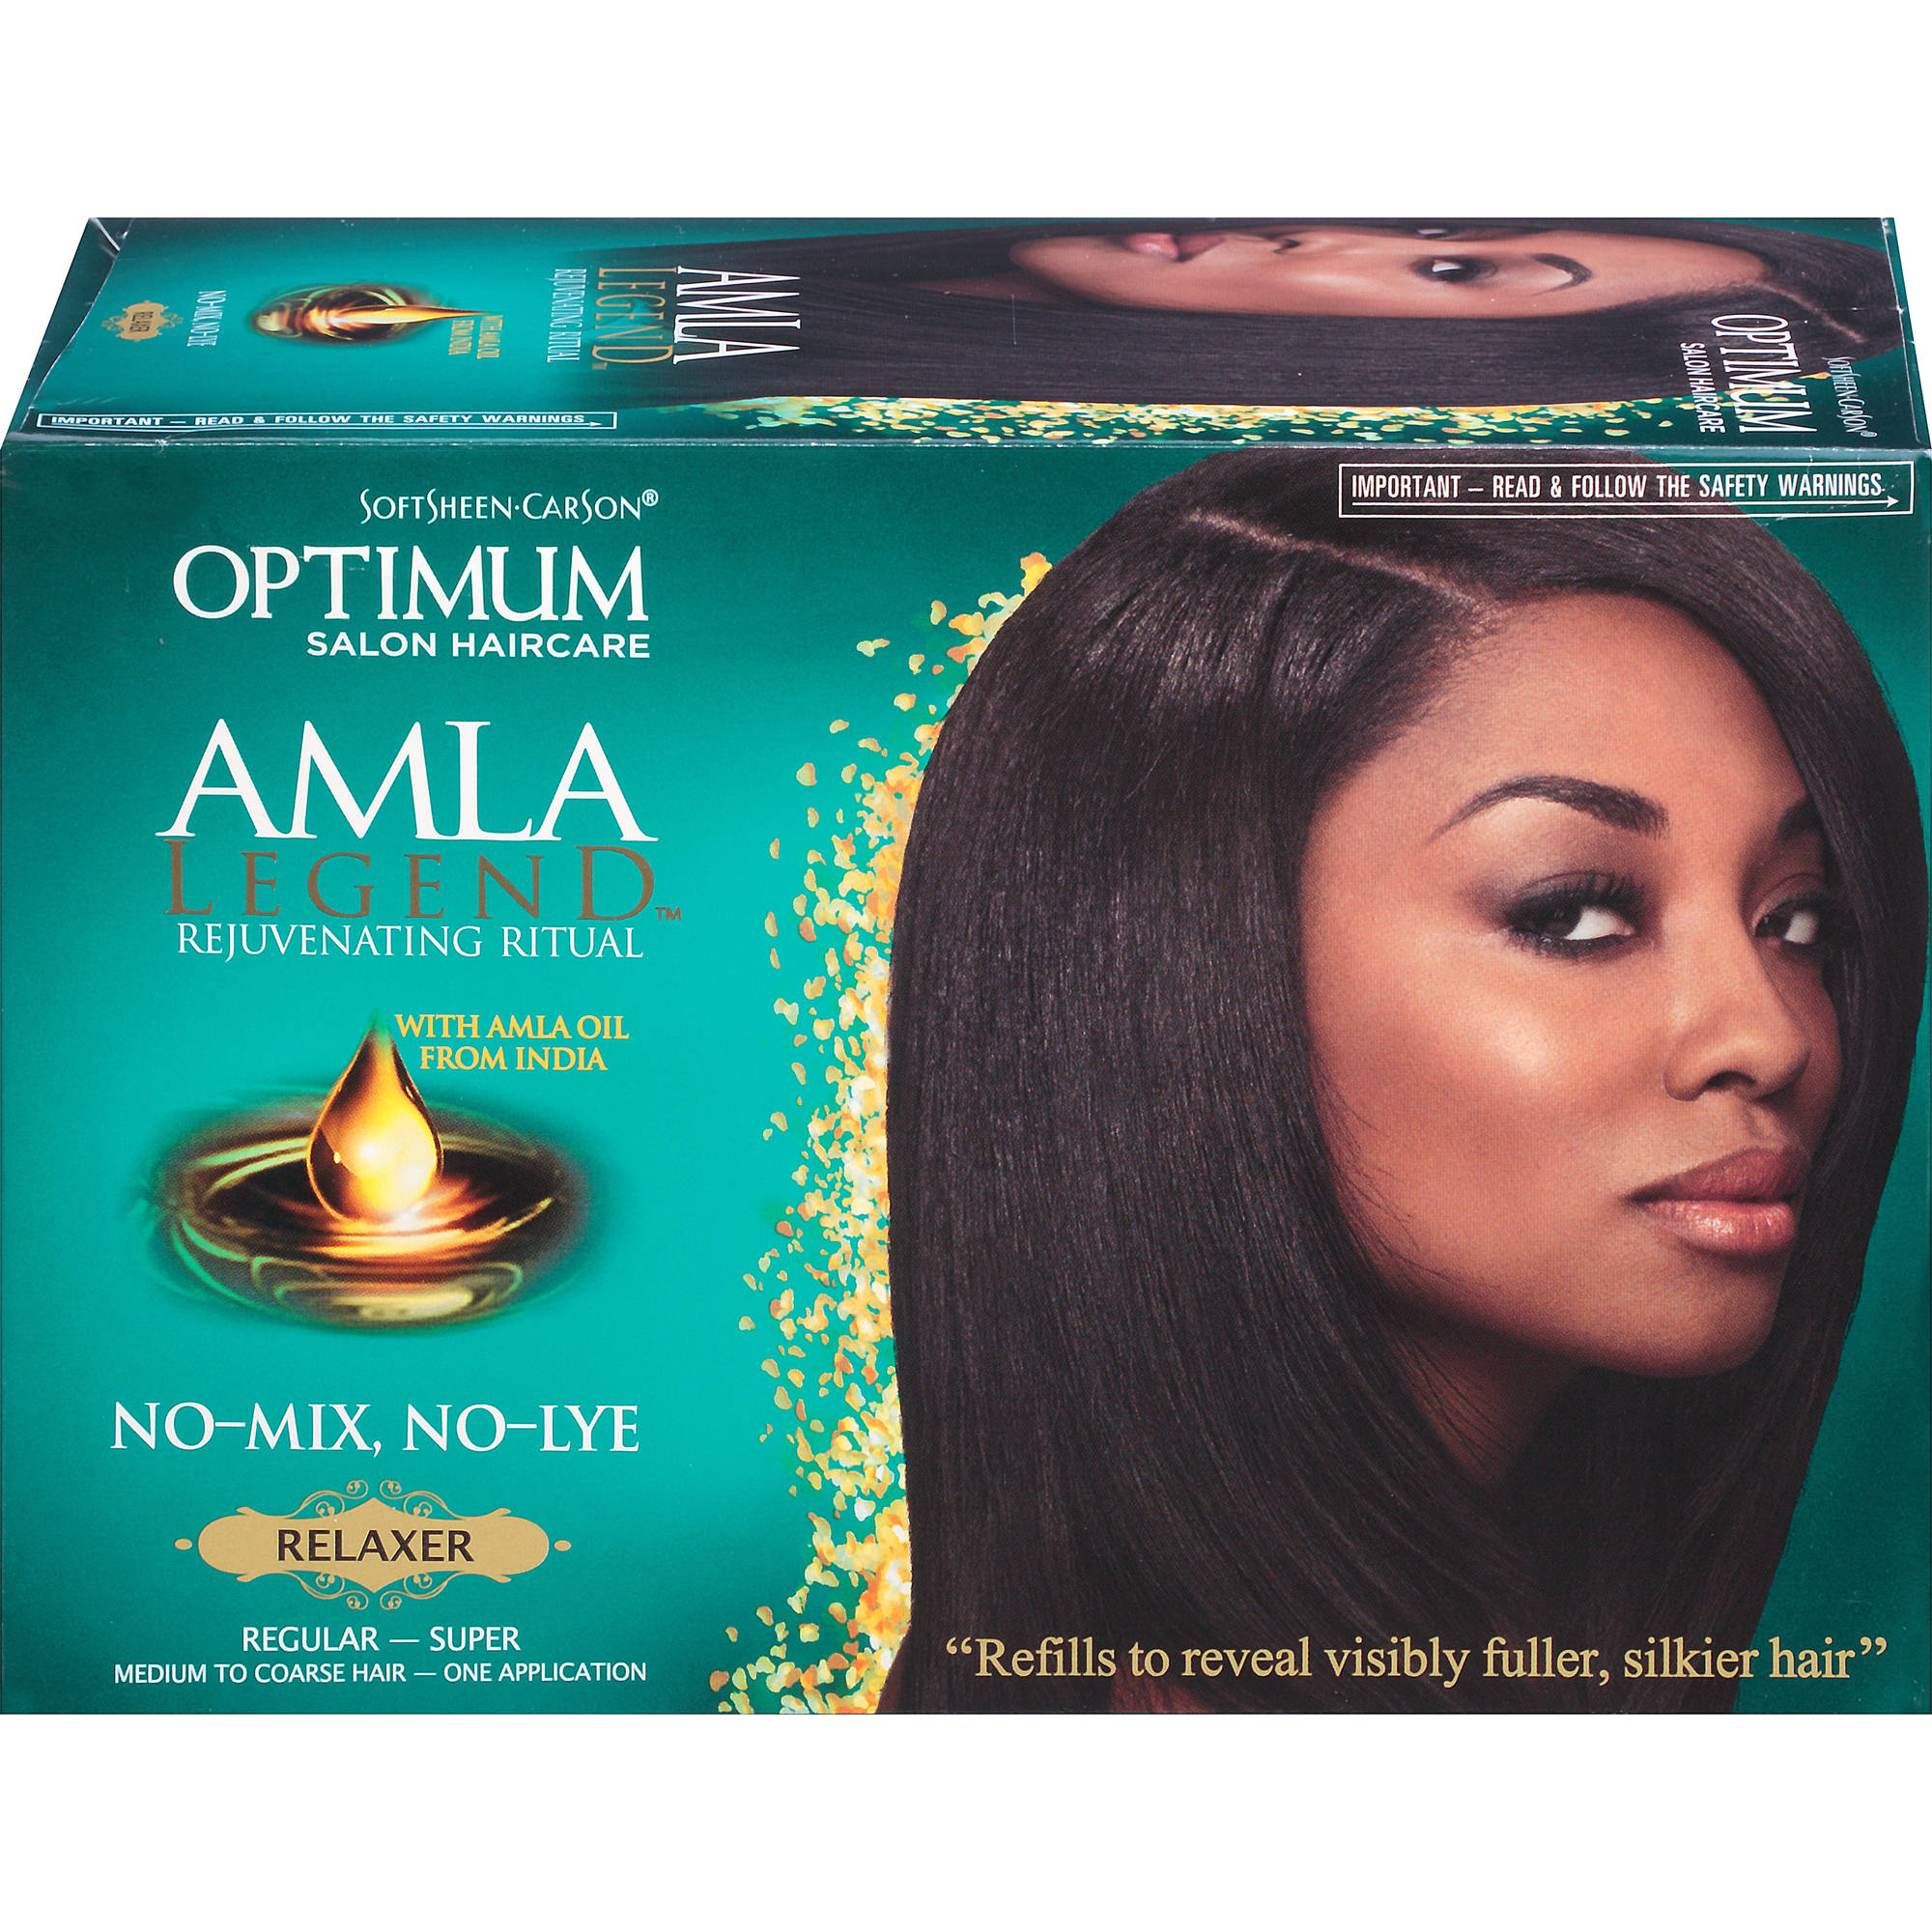 Optimum Amla Legend No-Mix, No-Lye Relaxer